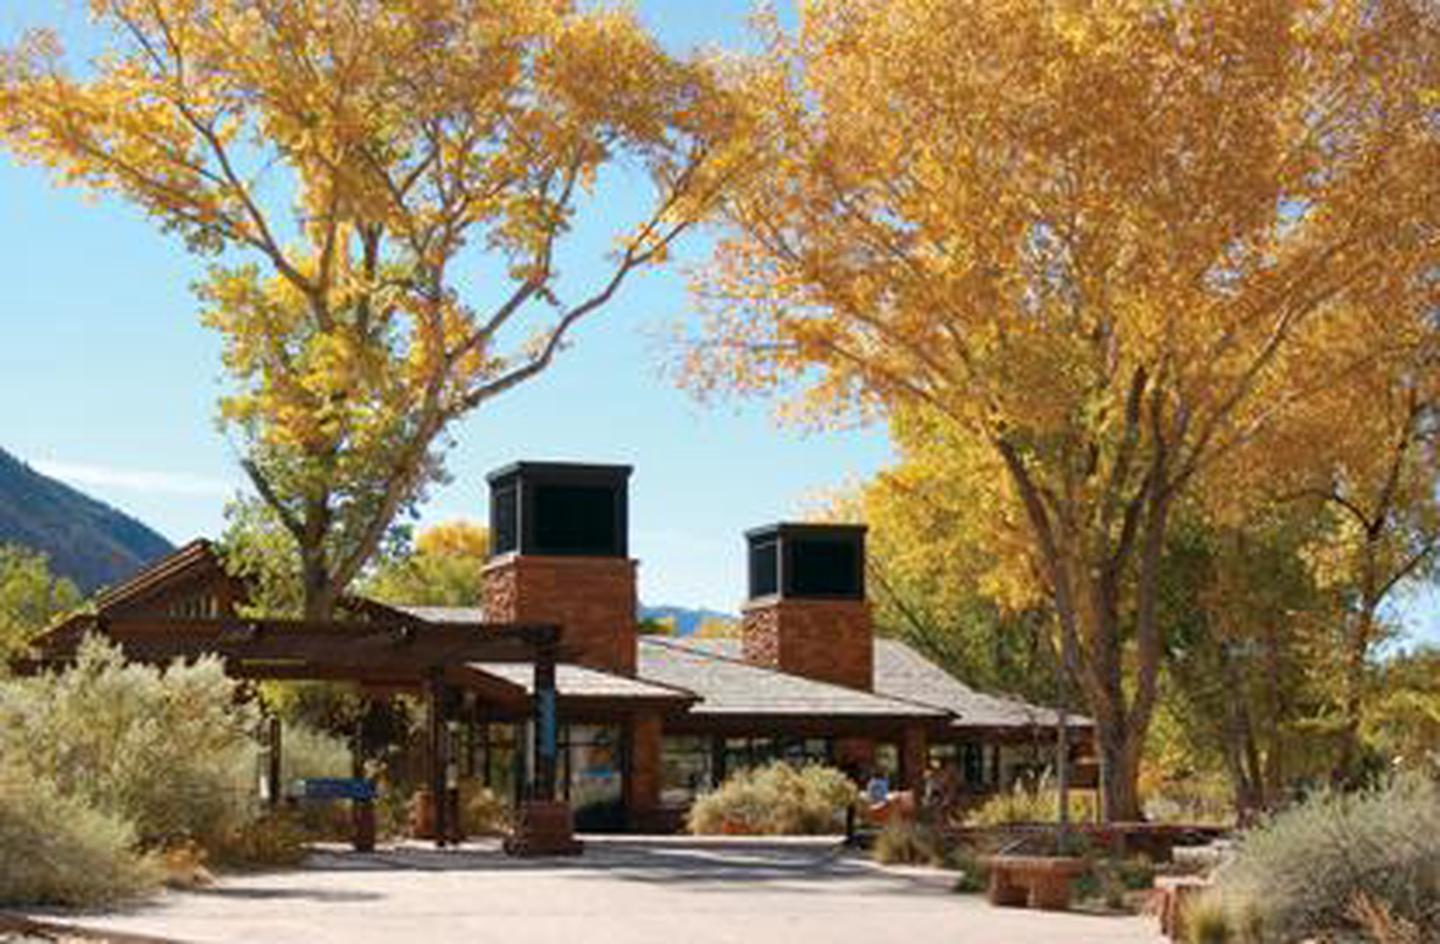 Preview photo of Zion Canyon Visitor Center